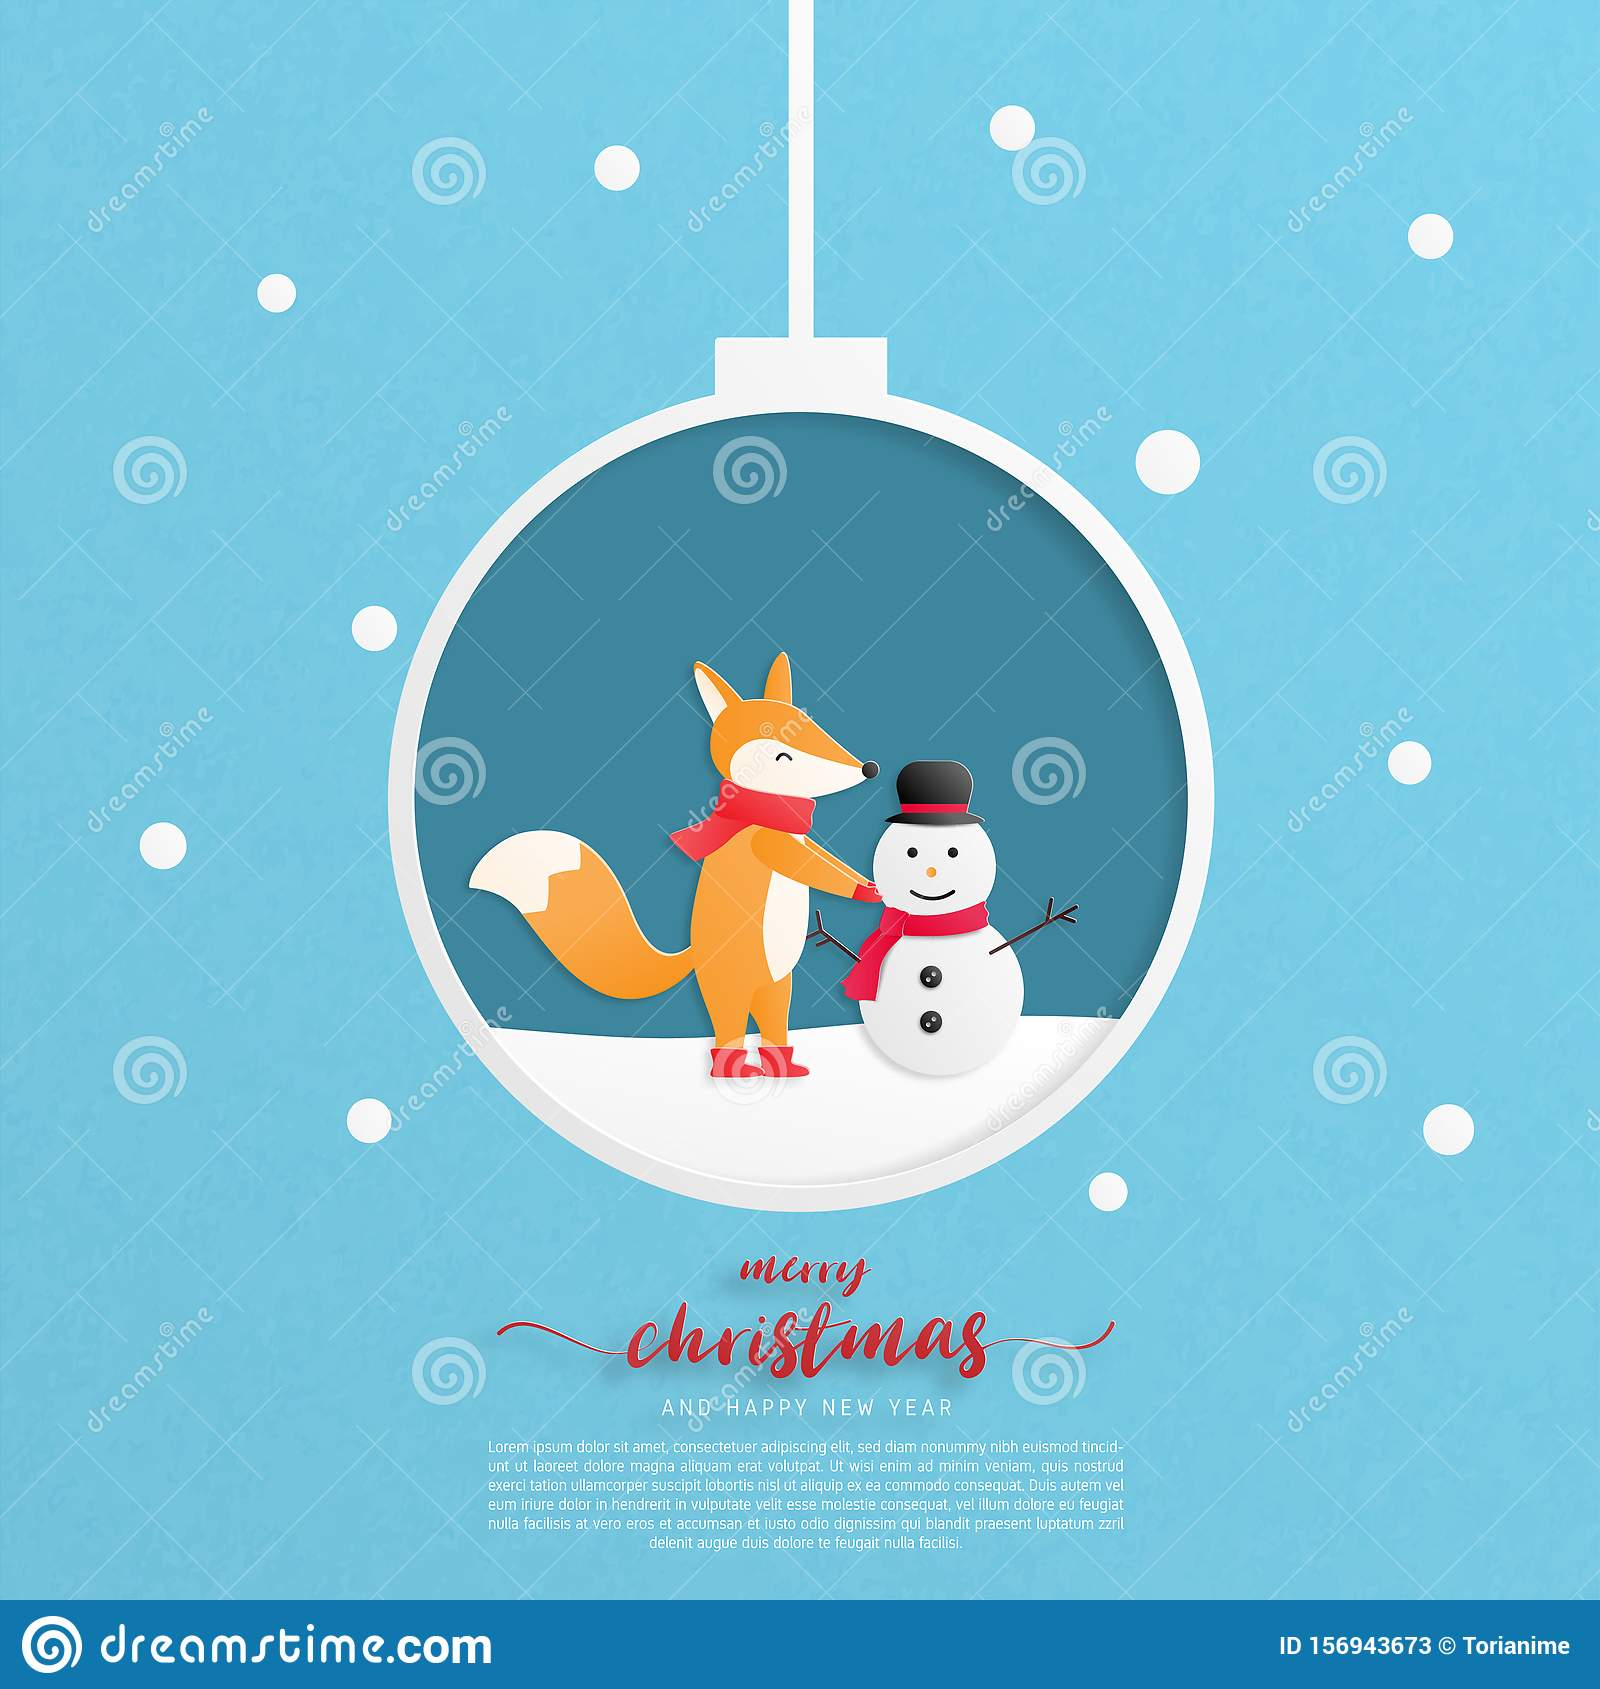 merry christmas and happy new year greeting card a happy child fox make a snowman in paper cut style vector illustration stock vector illustration of abstract congratulation 156943673 https www dreamstime com merry christmas happy new year greeting card child fox make snowman paper cut style vector illustration celebration image156943673